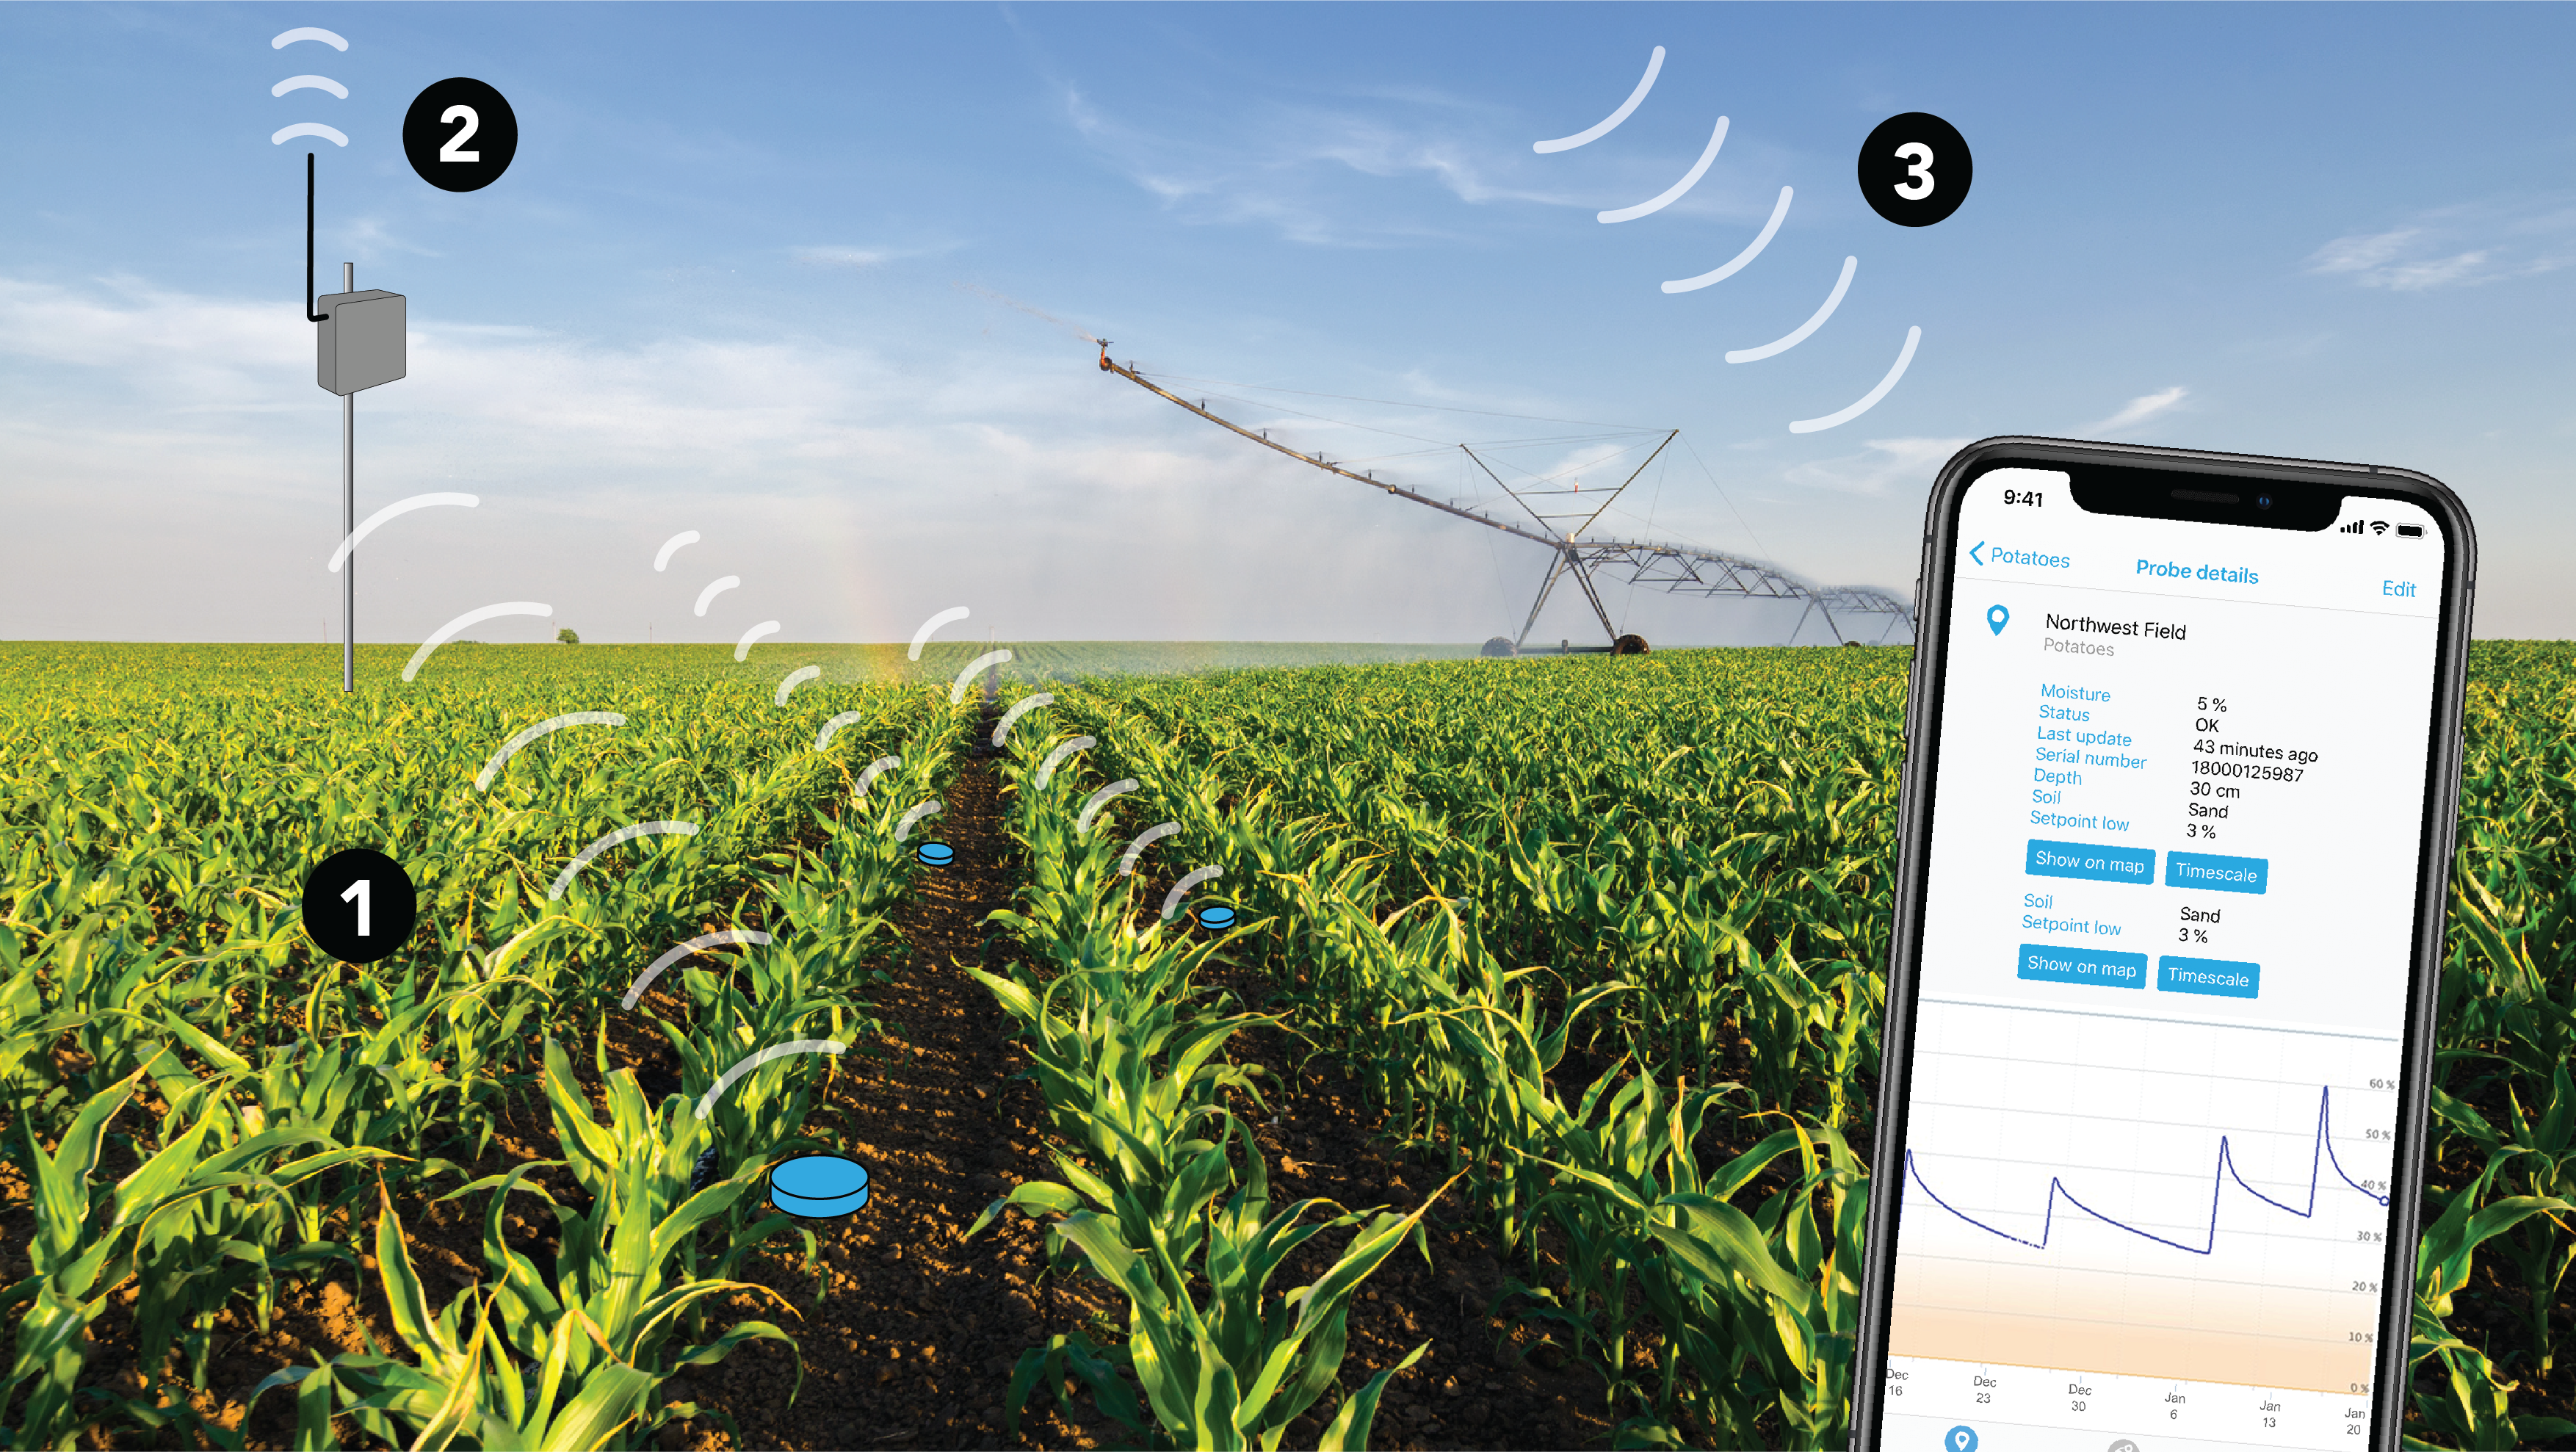 The challenges of implementing a LoRaWAN-based smart agriculture solution